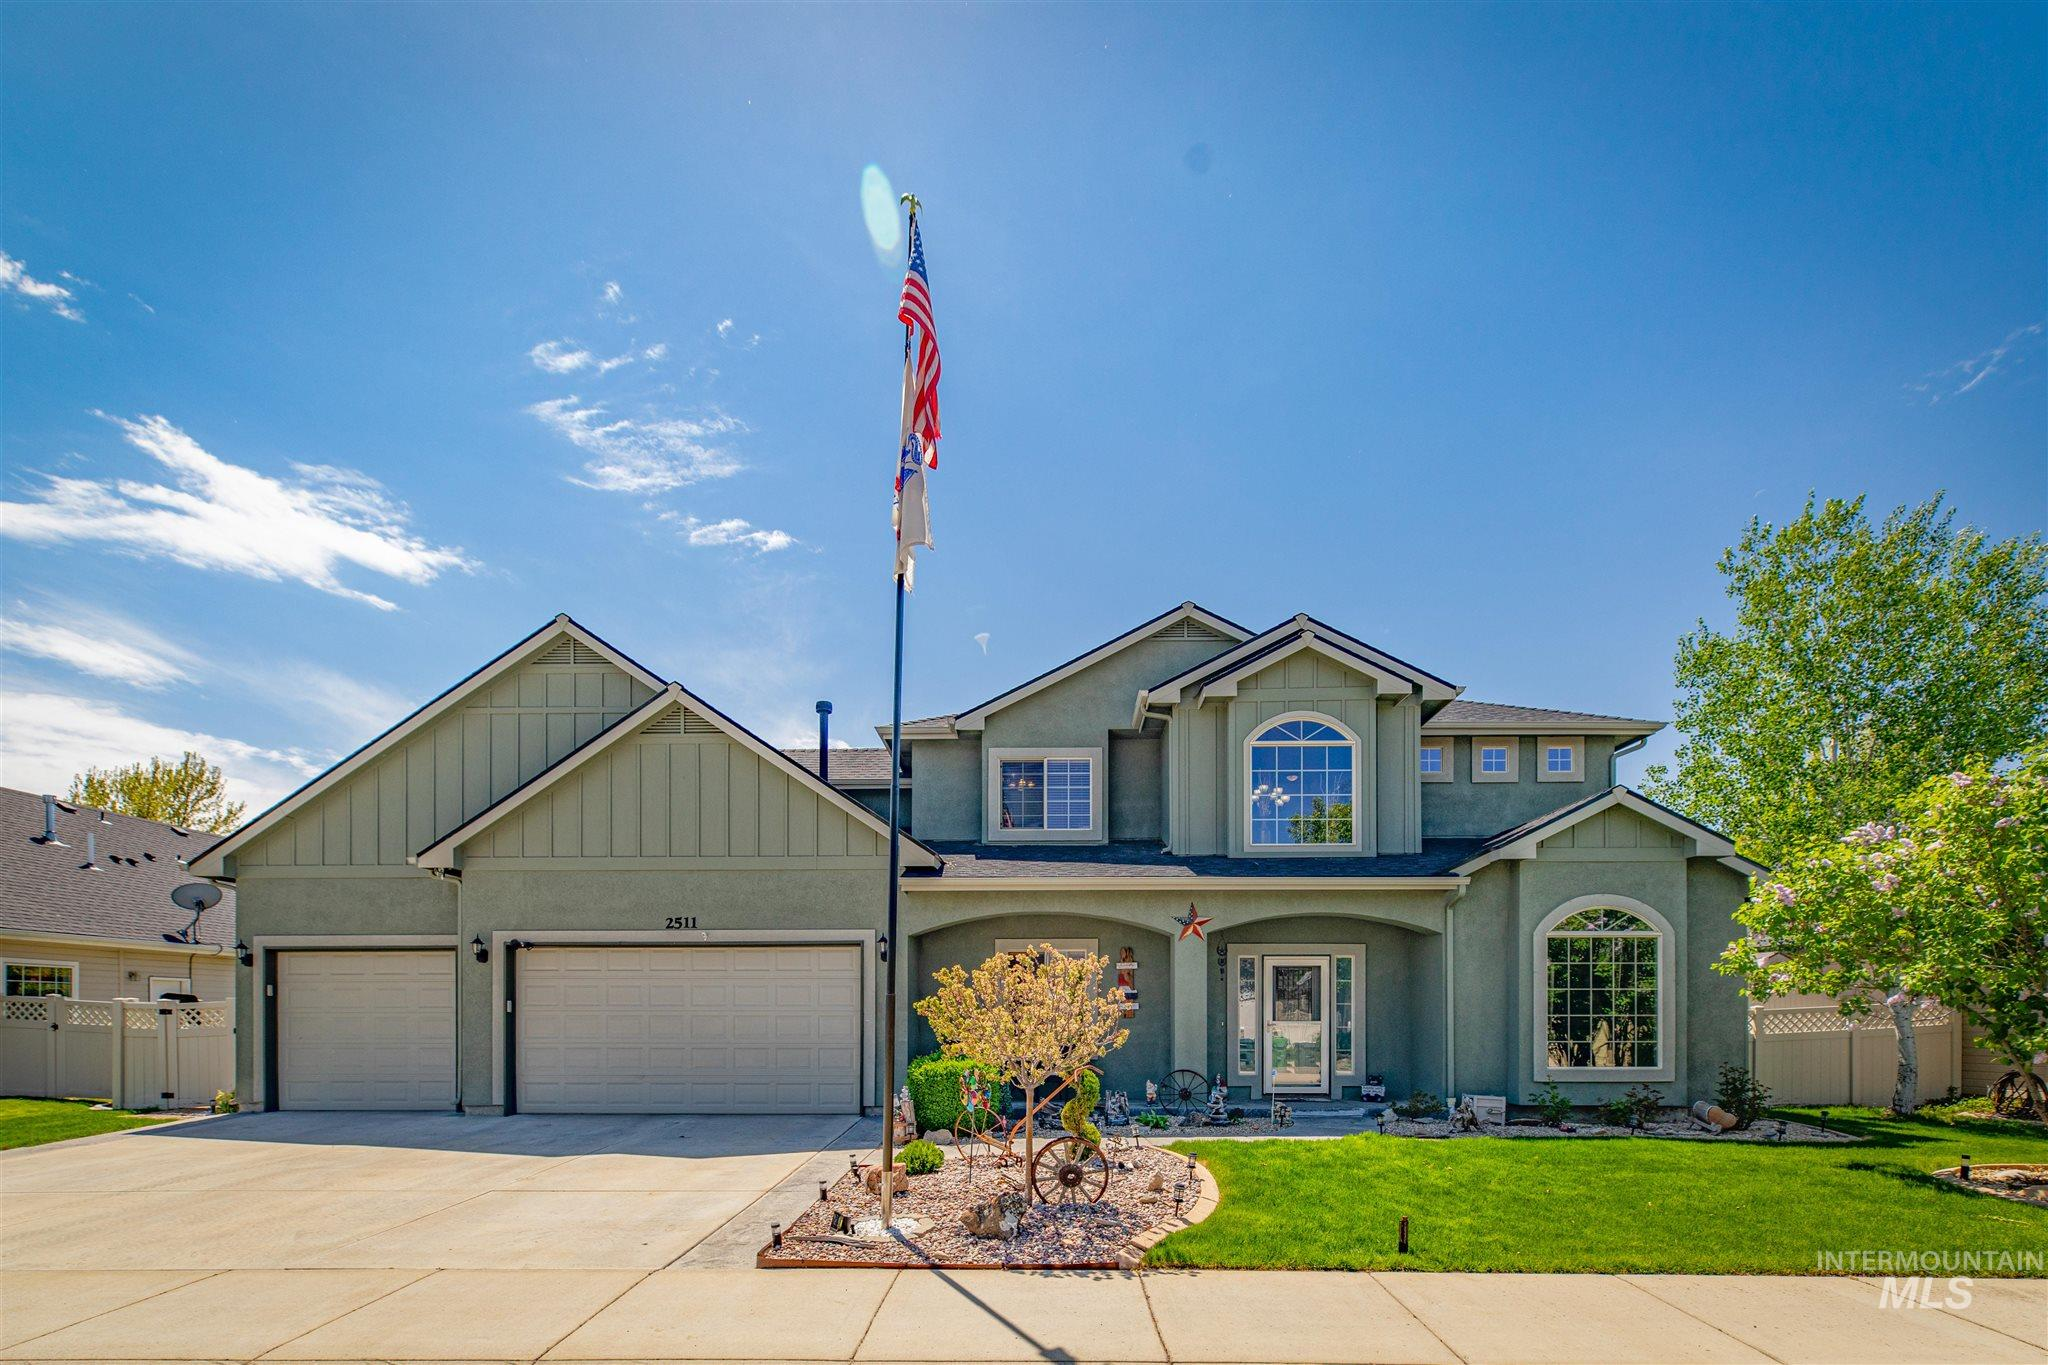 2511 W Teano Dr. Property Photo - Meridian, ID real estate listing